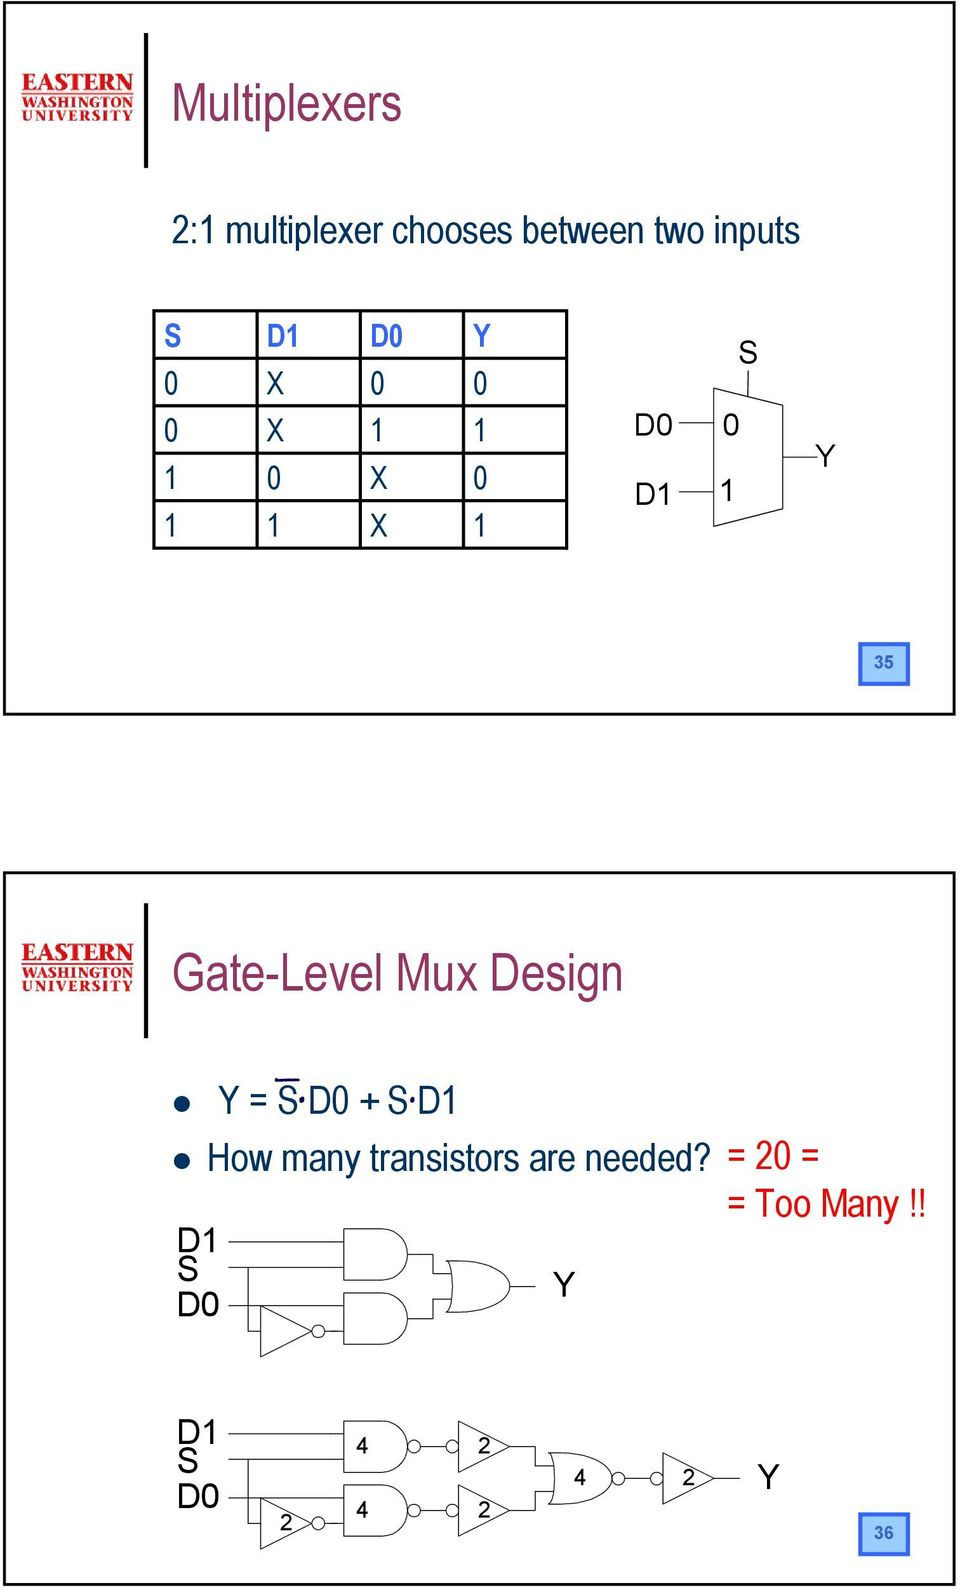 esign Y = S + S How many transistors are